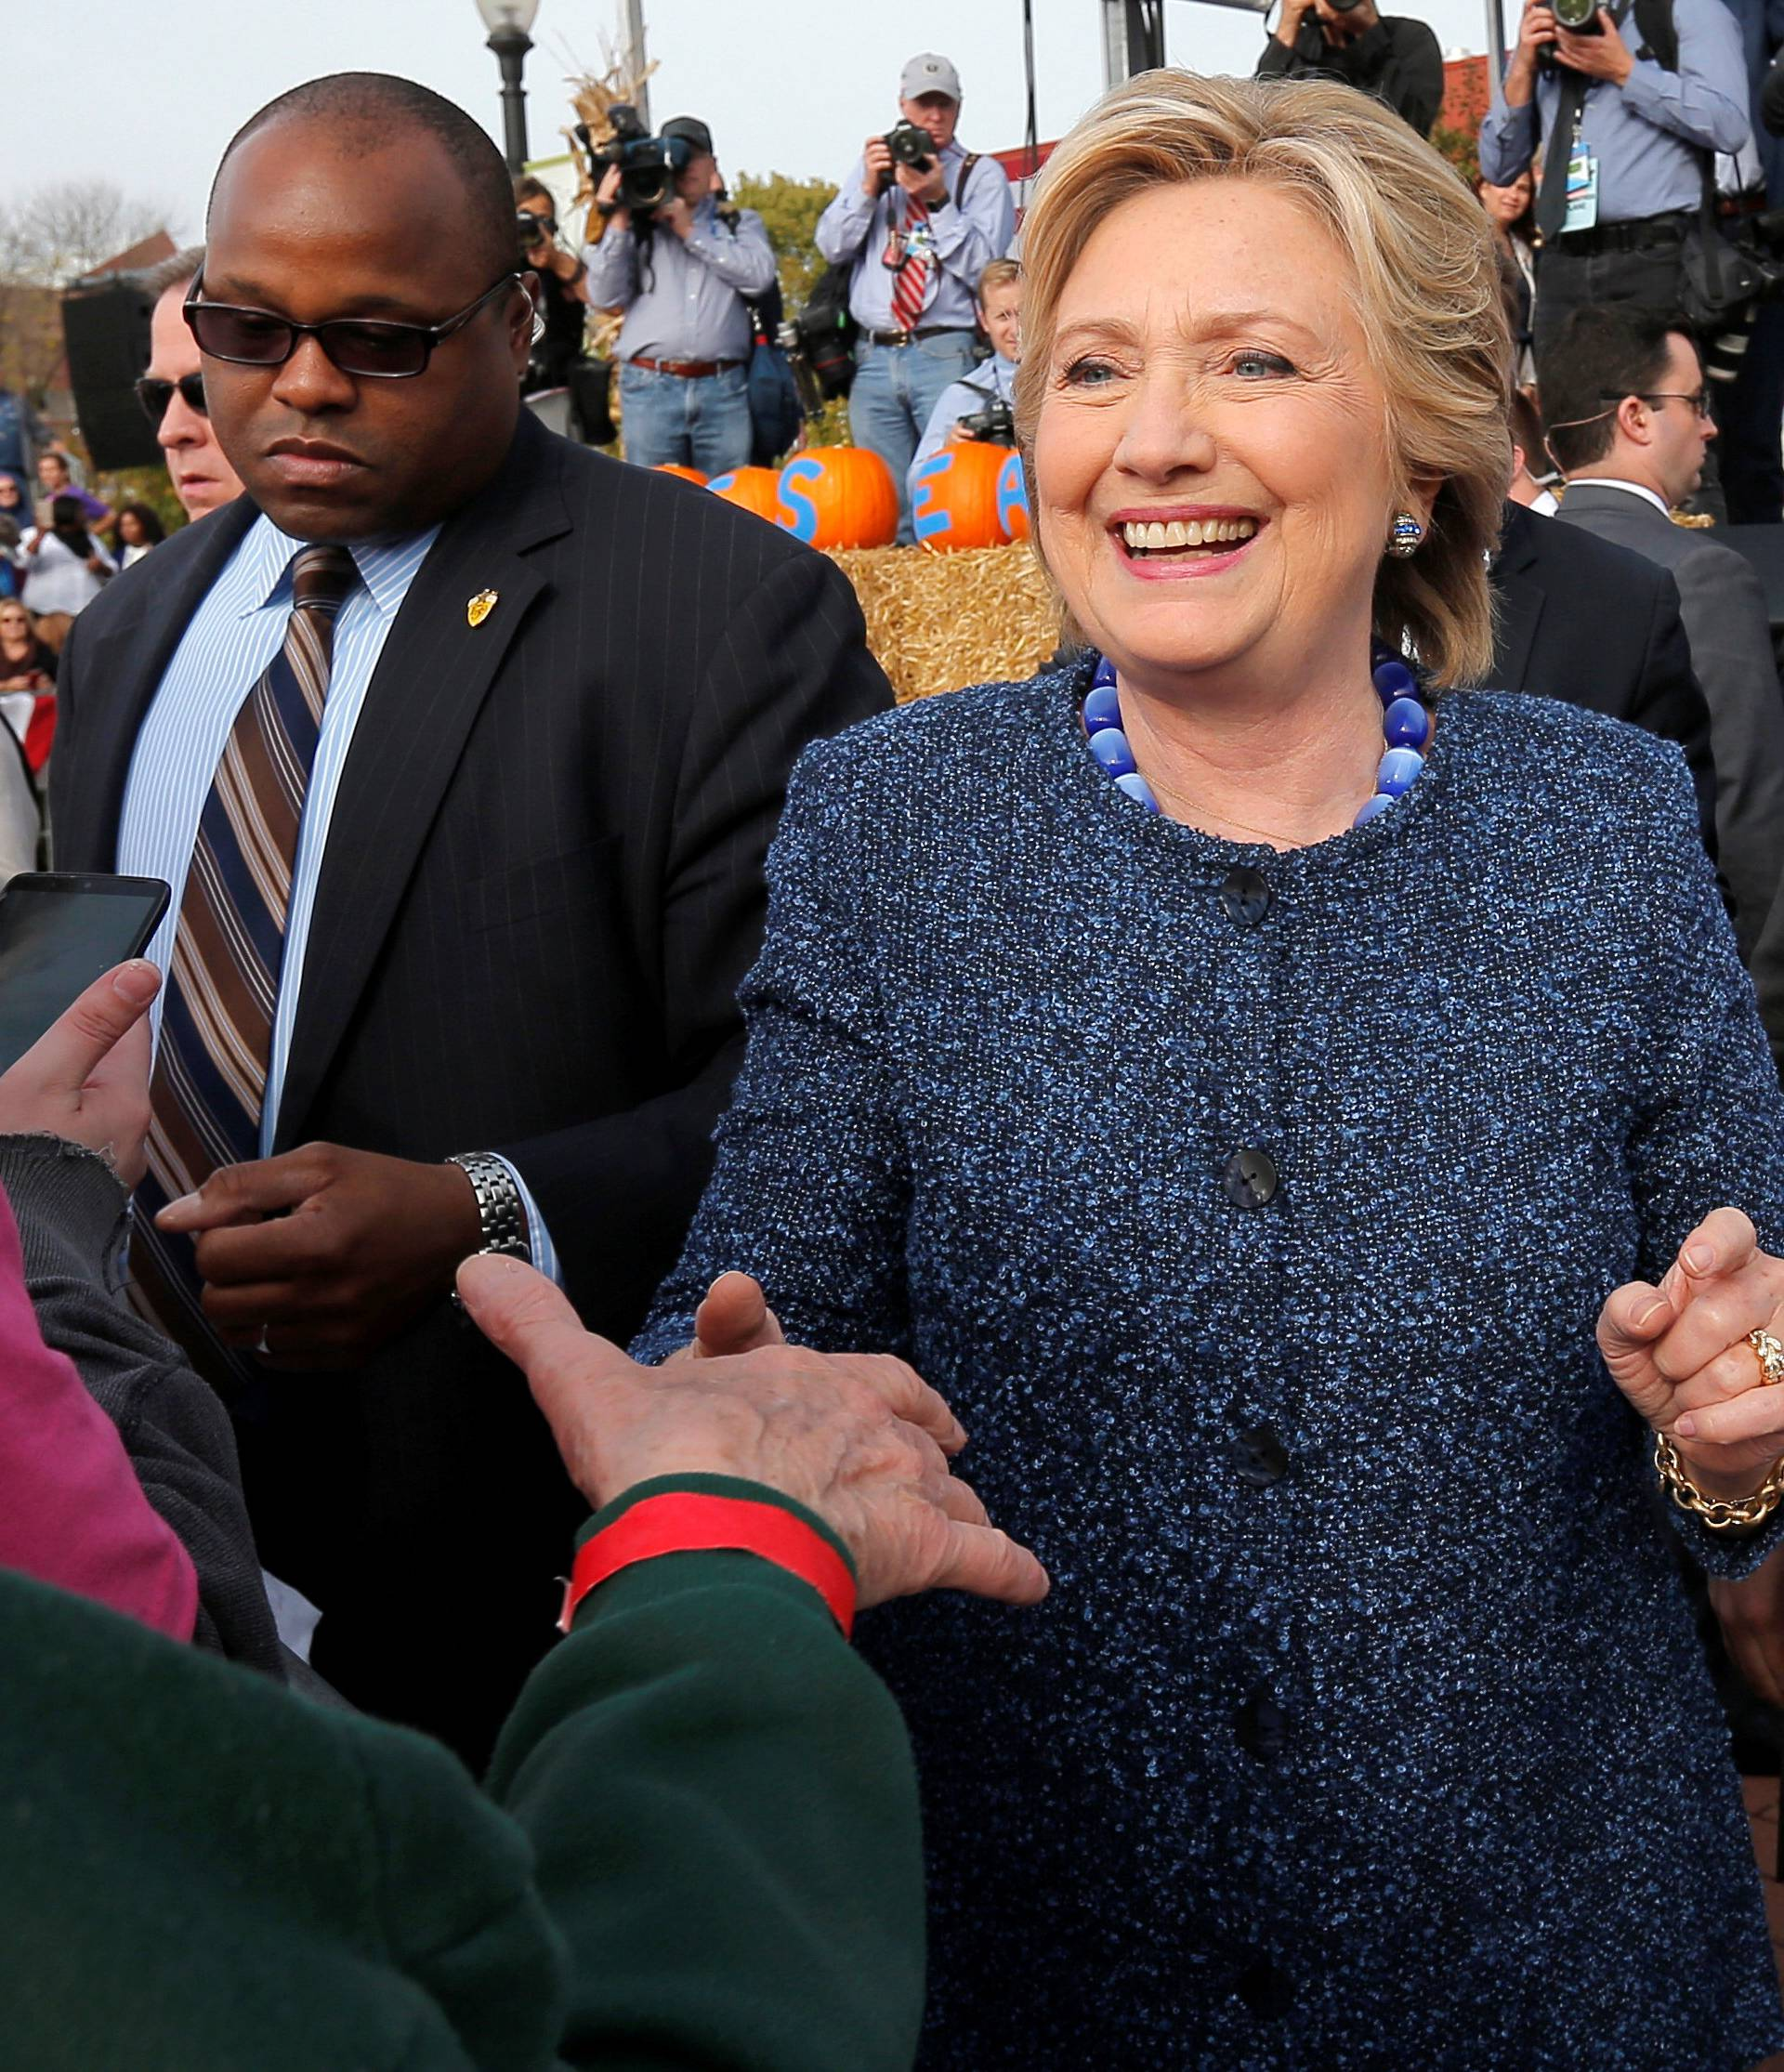 U.S. Democratic presidential nominee Hillary Clinton greets audience members at a campaign rally in Cedar Rapids